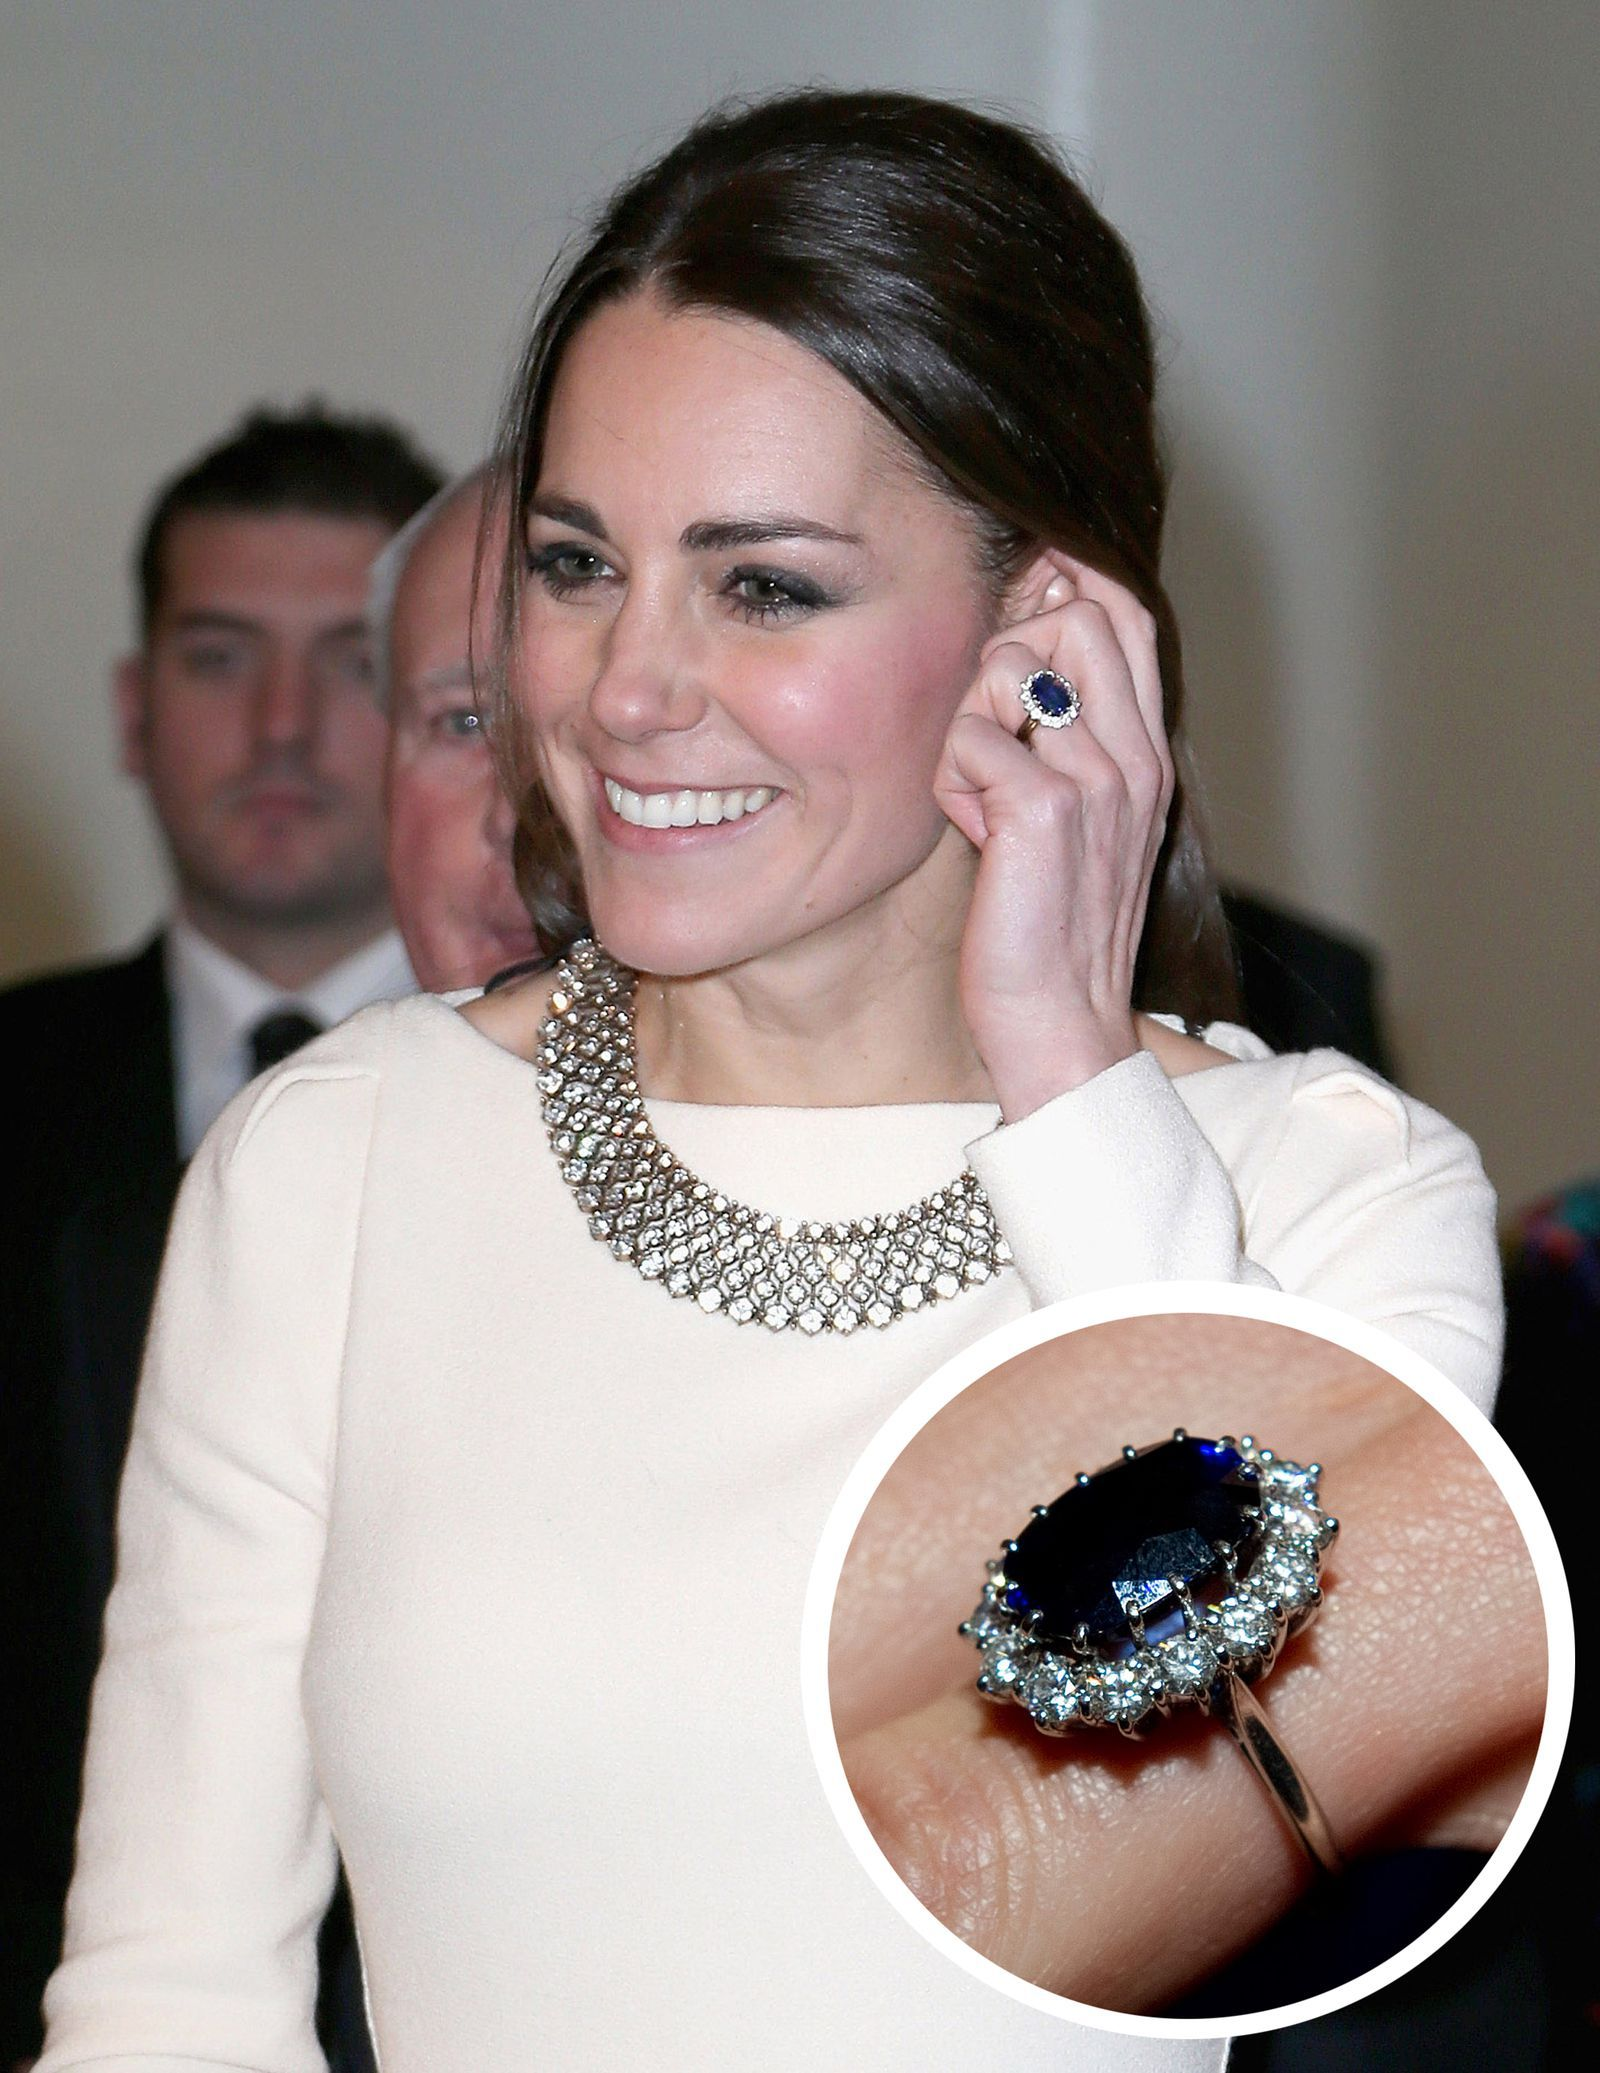 14 Of The Most Iconic Royal Engagement Rings Royal Engagement Rings Kate Middleton Ring Royal Engagement